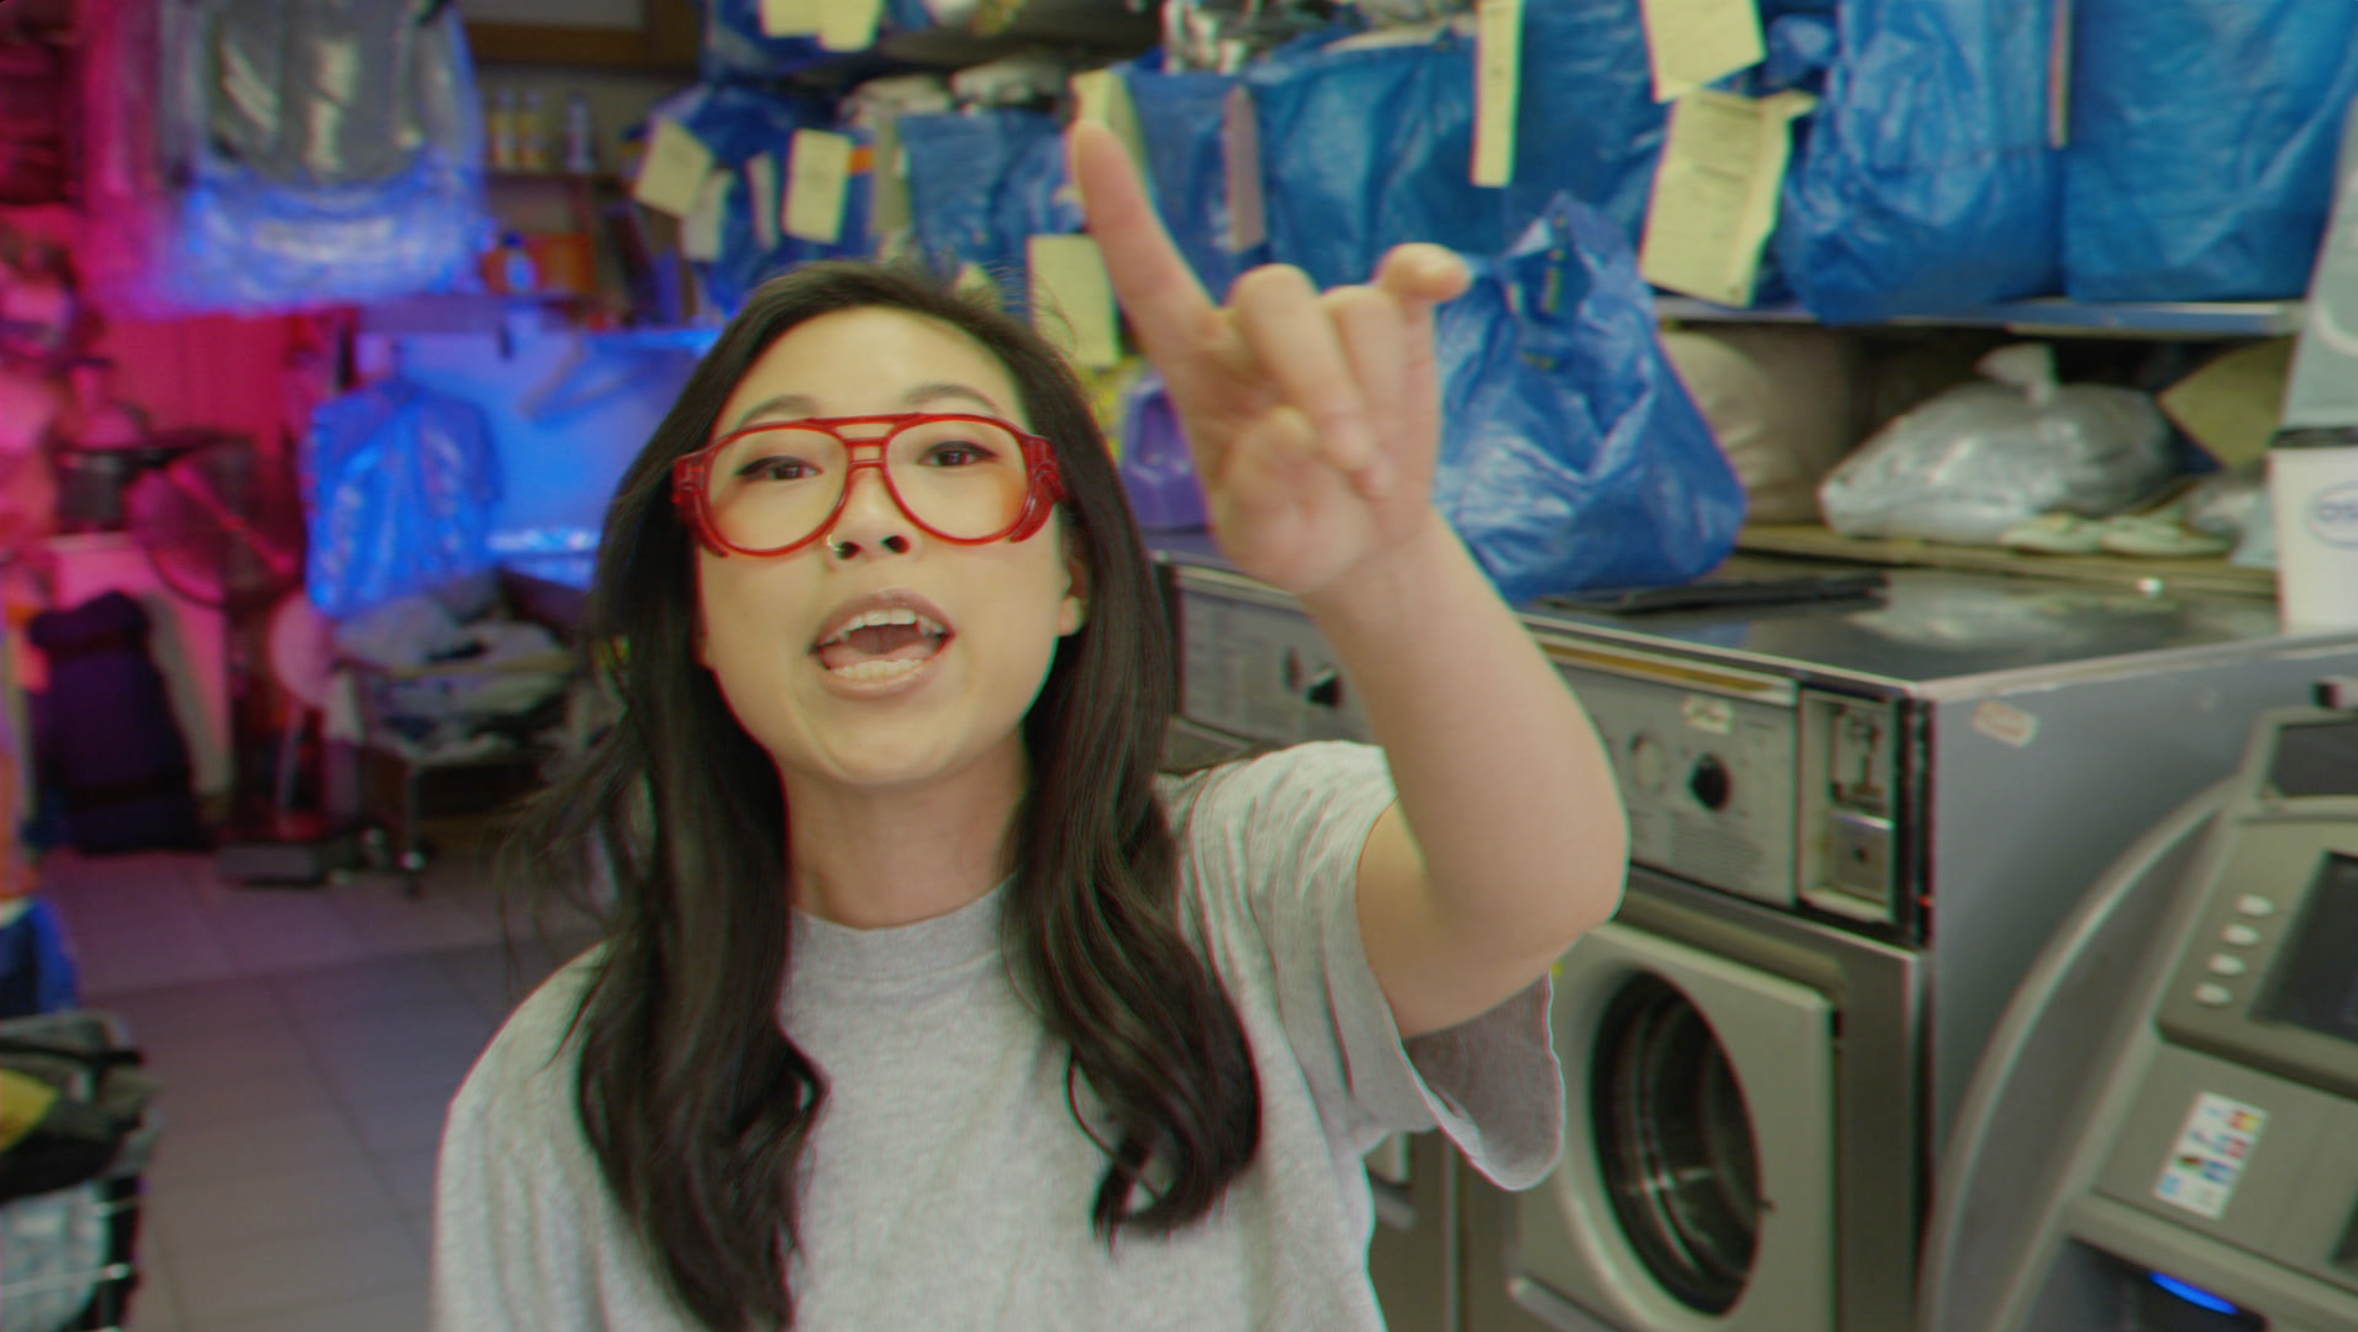 Awkwafina on authenticity, rapping for the right reasons